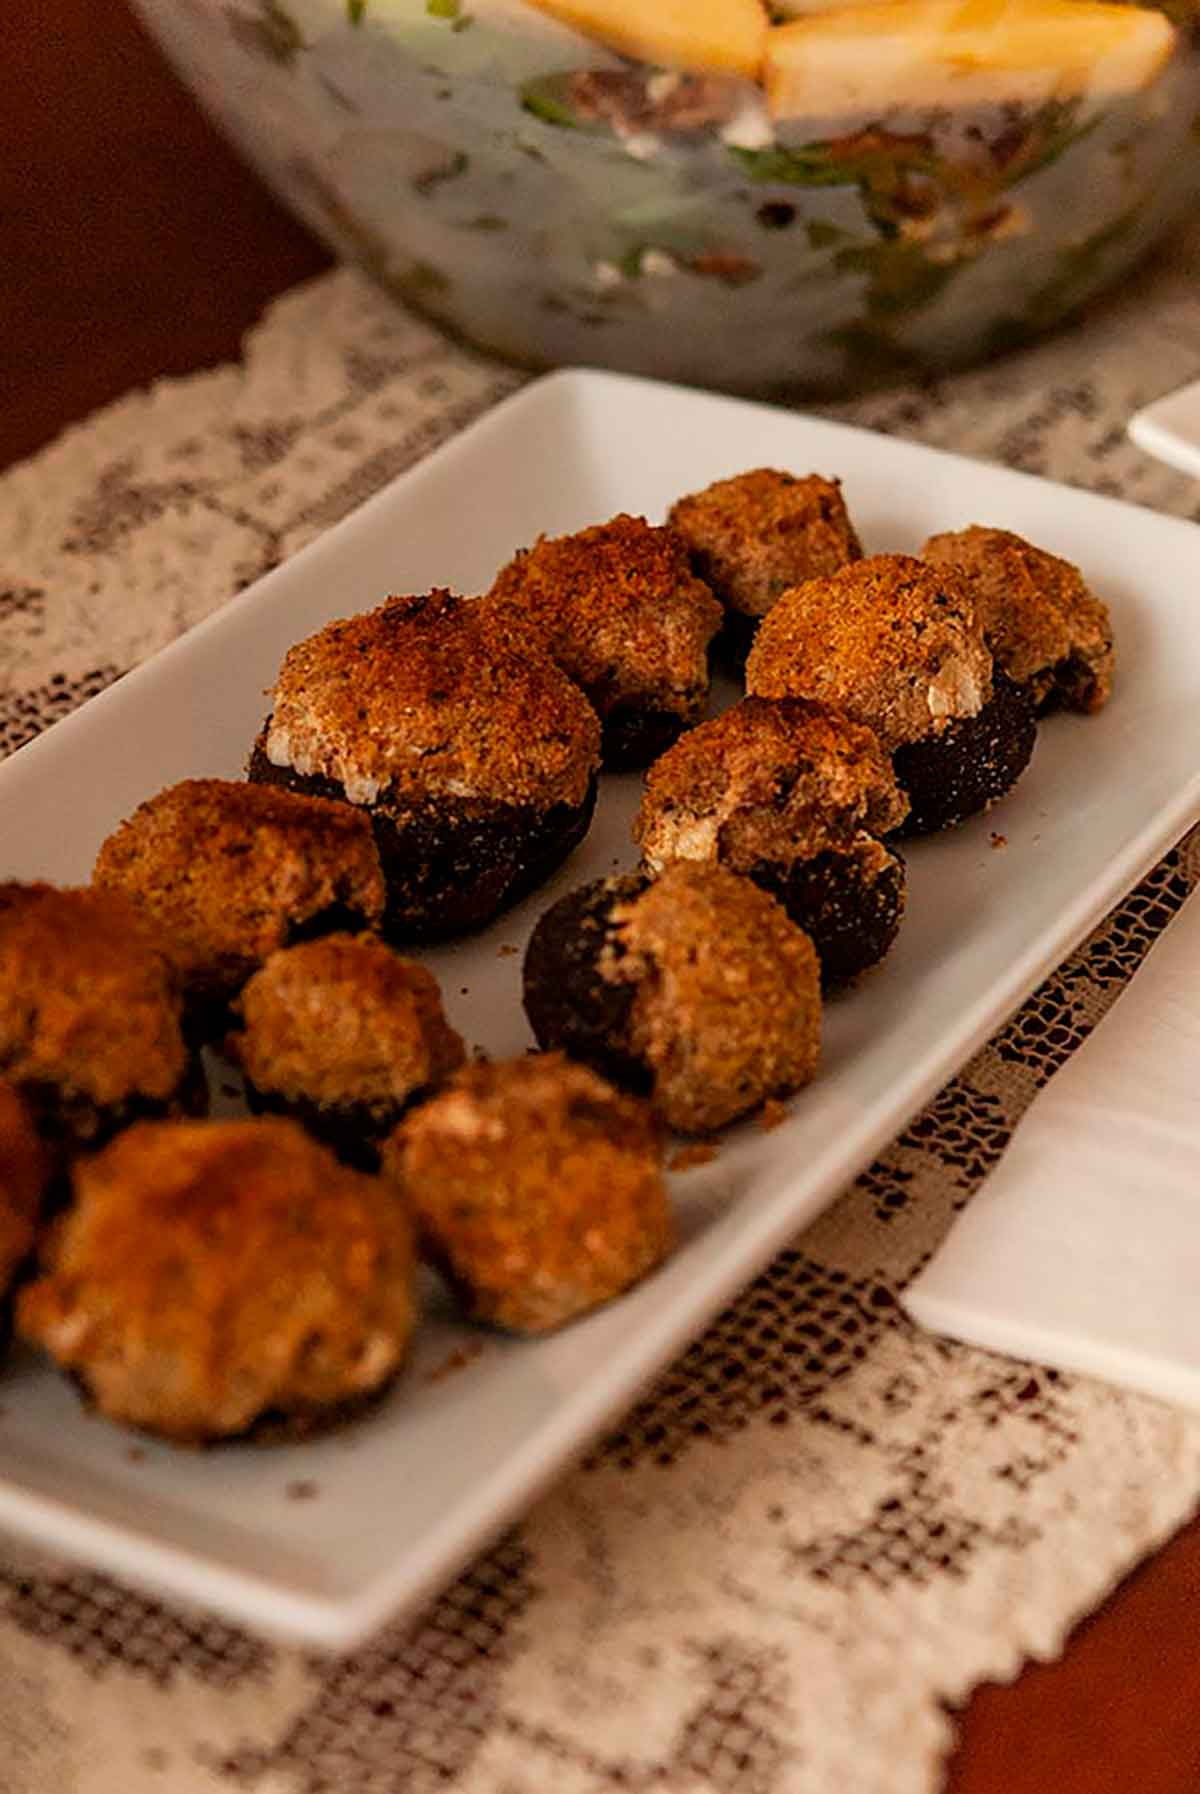 A plate of stuffed mushrooms on a table with an old, lace tablecloth.